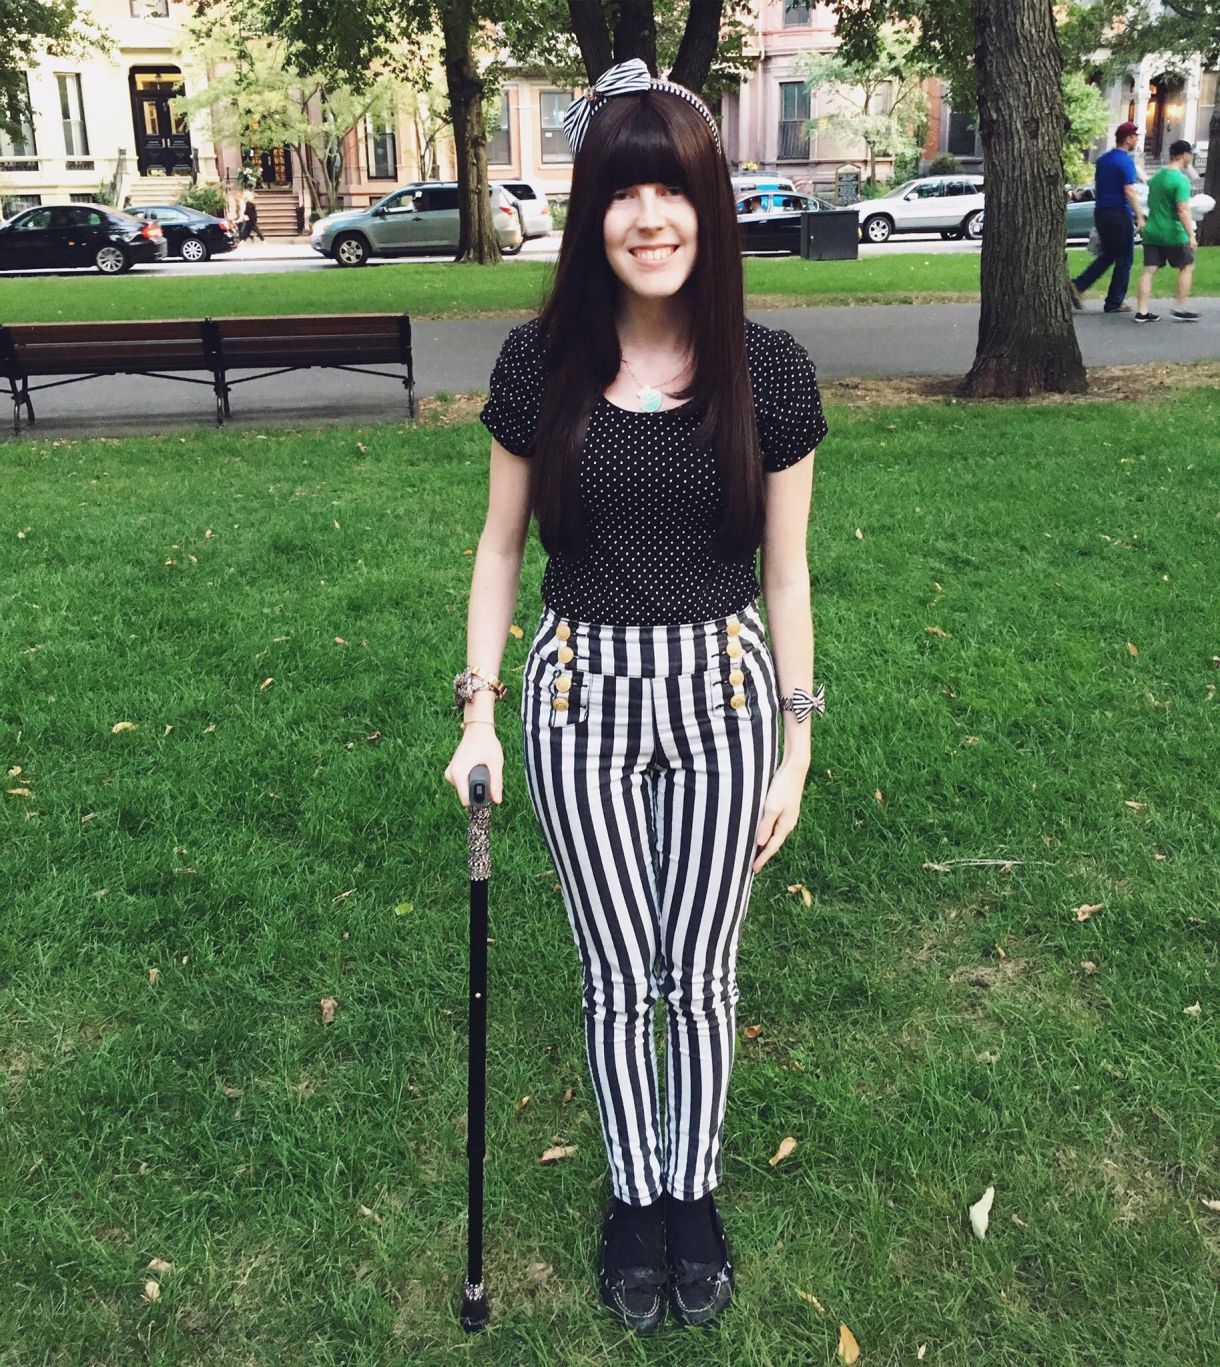 A white person in her twenties with long brown hair and blunt bangs stands on the grass in a park. She's holding a black cane and wearing black and white striped pants and a black top with small white polka dots, plus a headband with black and white stripes and a bow.